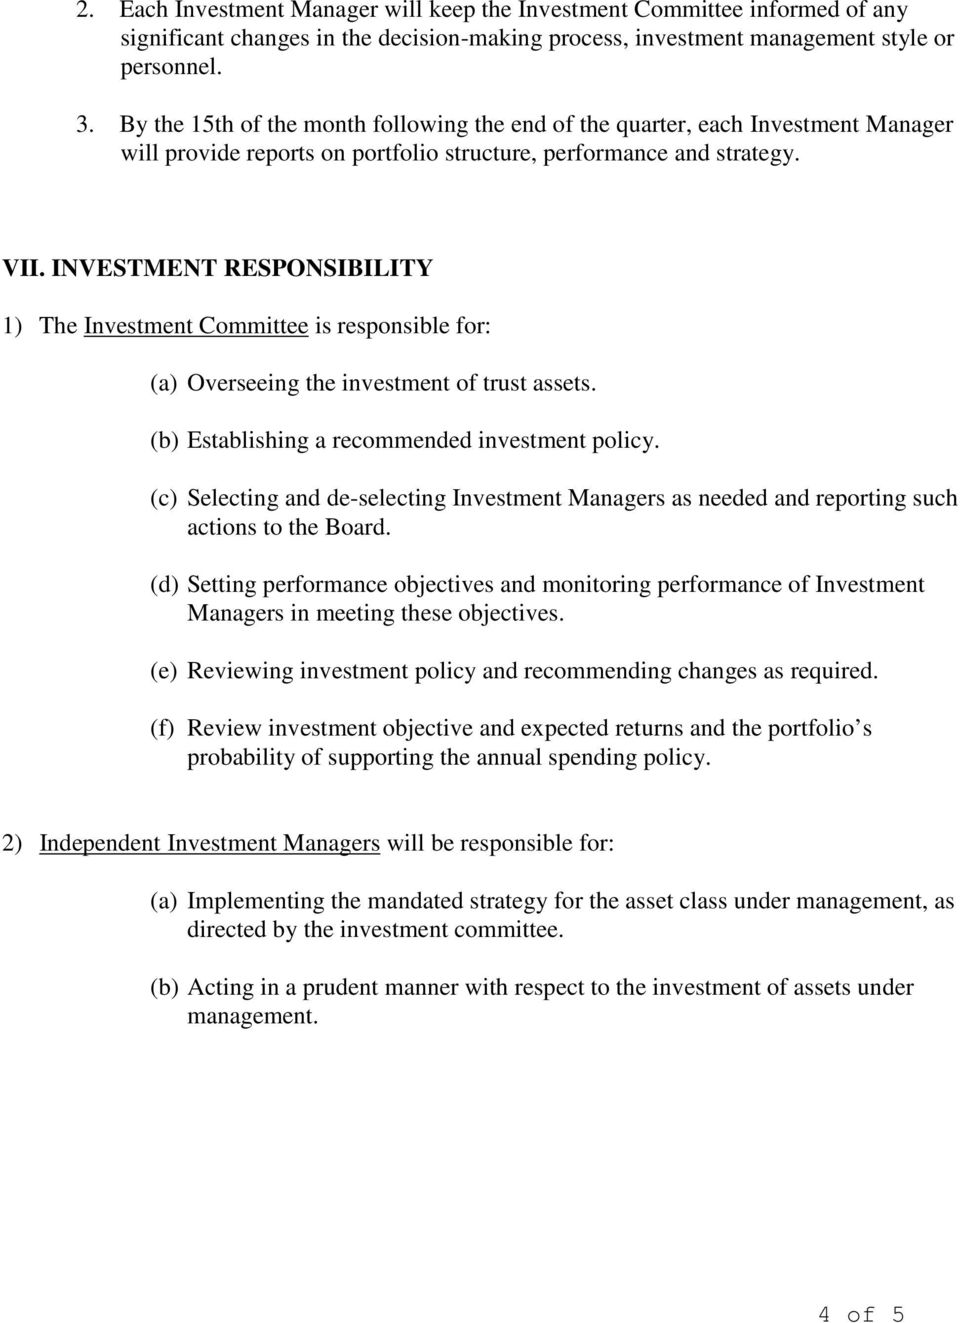 INVESTMENT RESPONSIBILITY 1) The Investment Committee is responsible for: (a) Overseeing the investment of trust assets. (b) Establishing a recommended investment policy.